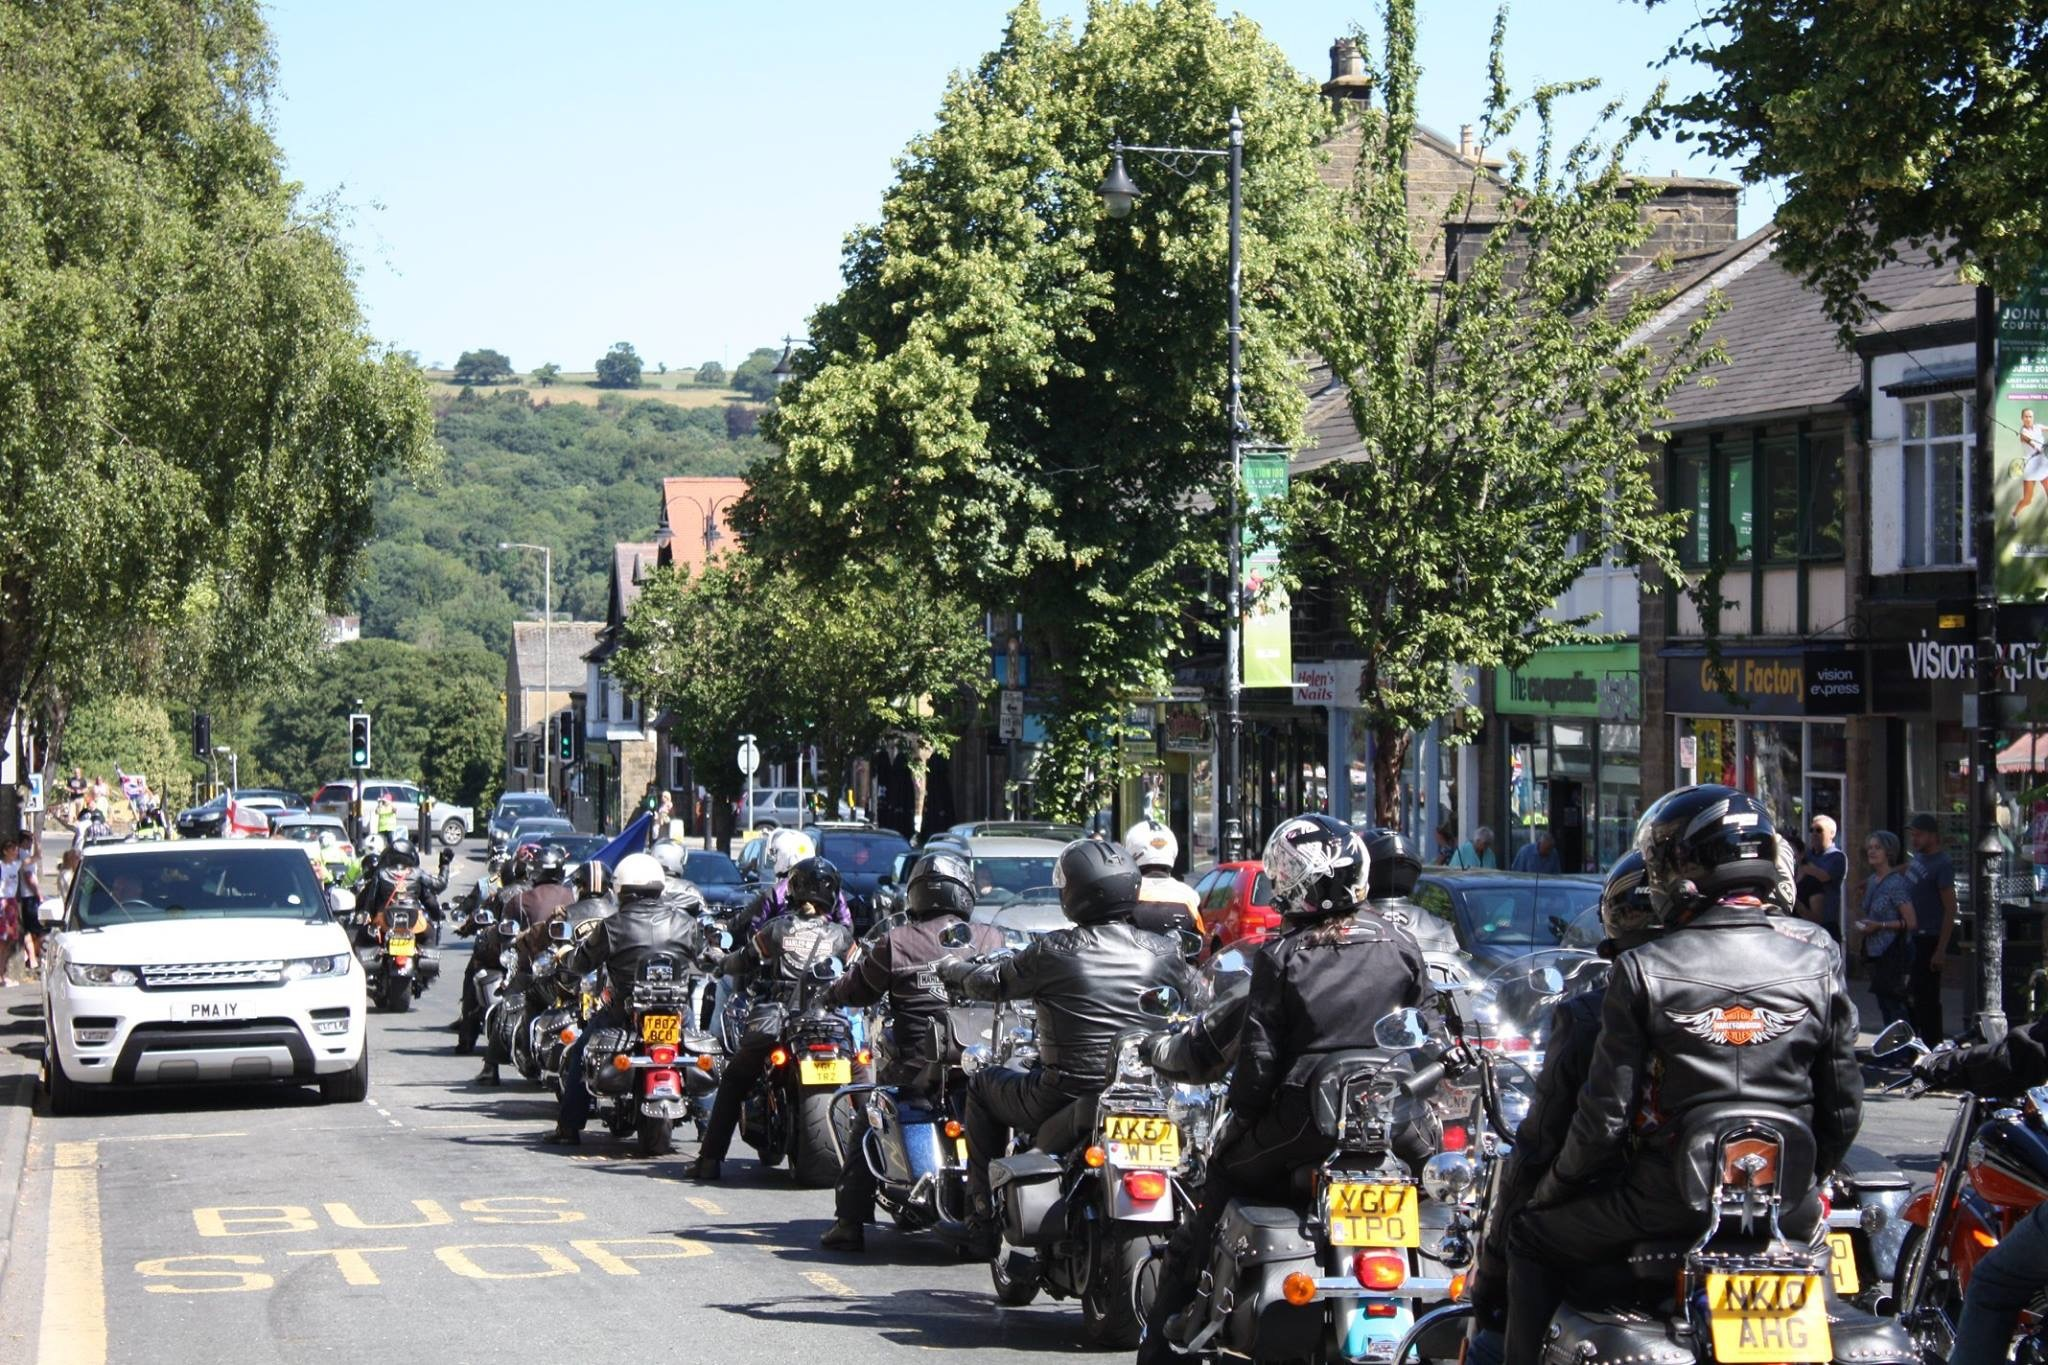 Members of the Aire Valley UK Harley Owners Club enjoy their second annual Roar On The Moor Rally in Ilkley